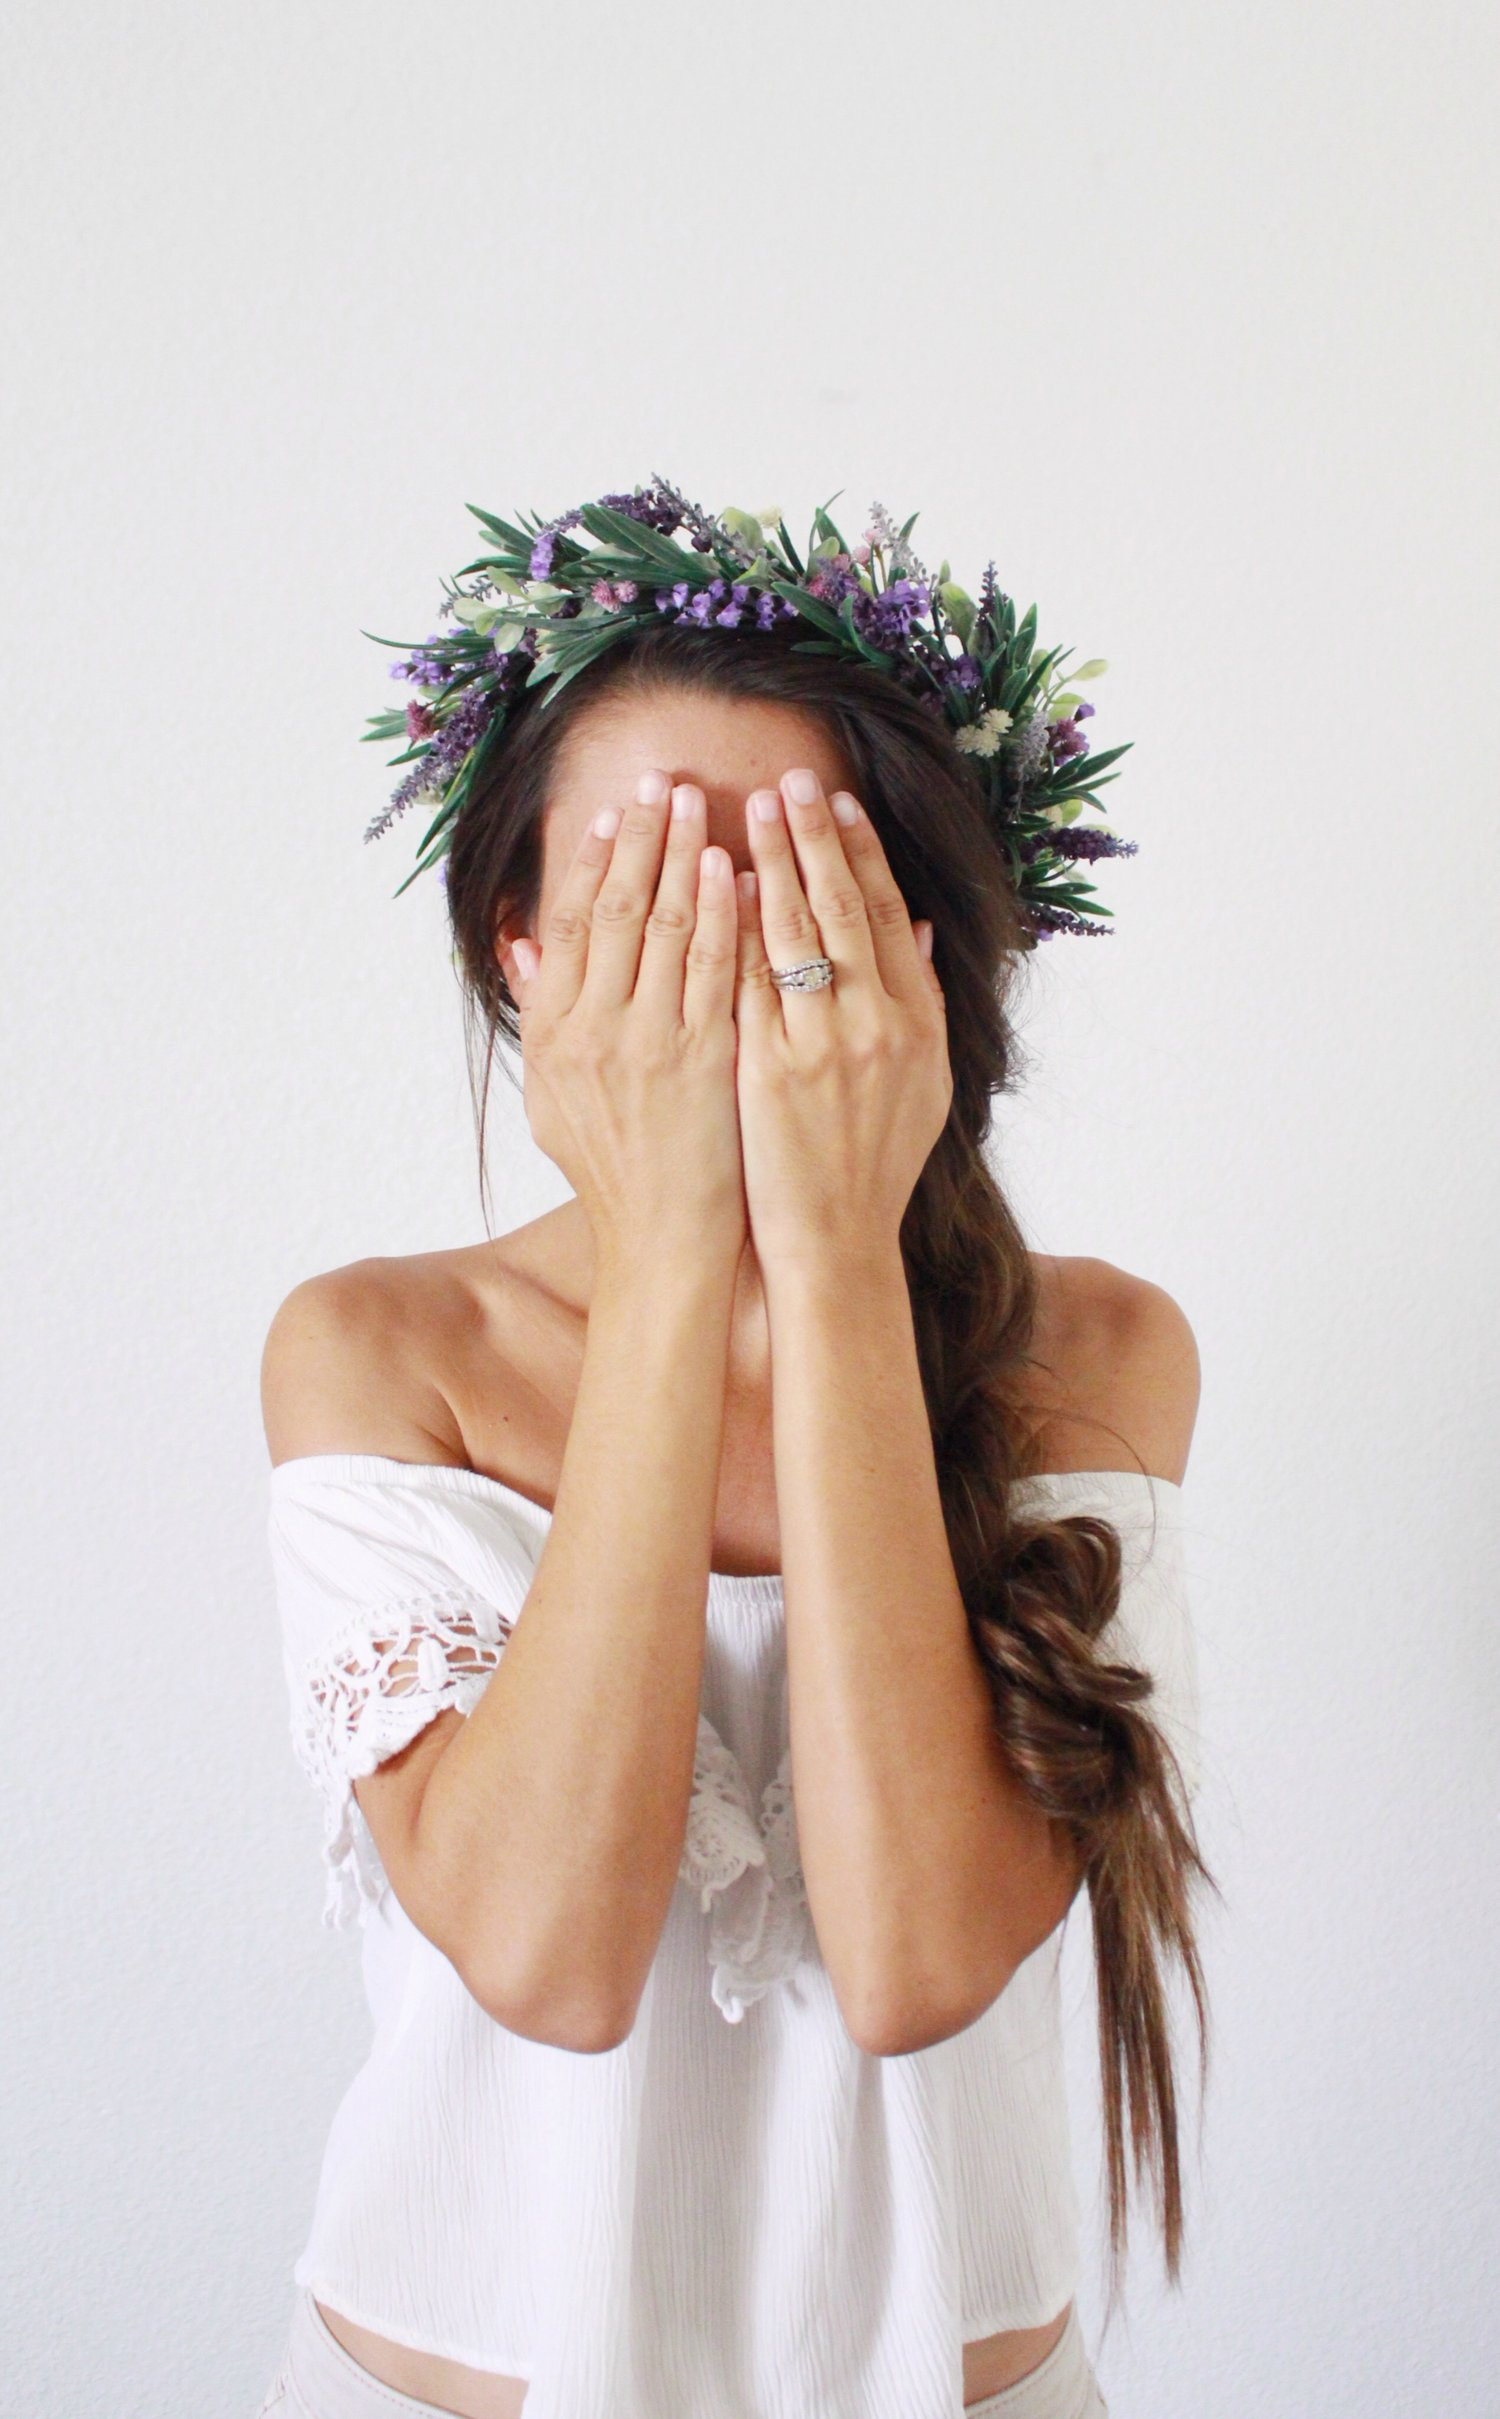 braided+hairstyle+with+flower+crown.+diy+lavender+flower+crown.+flower+crown+style.+hairstyle